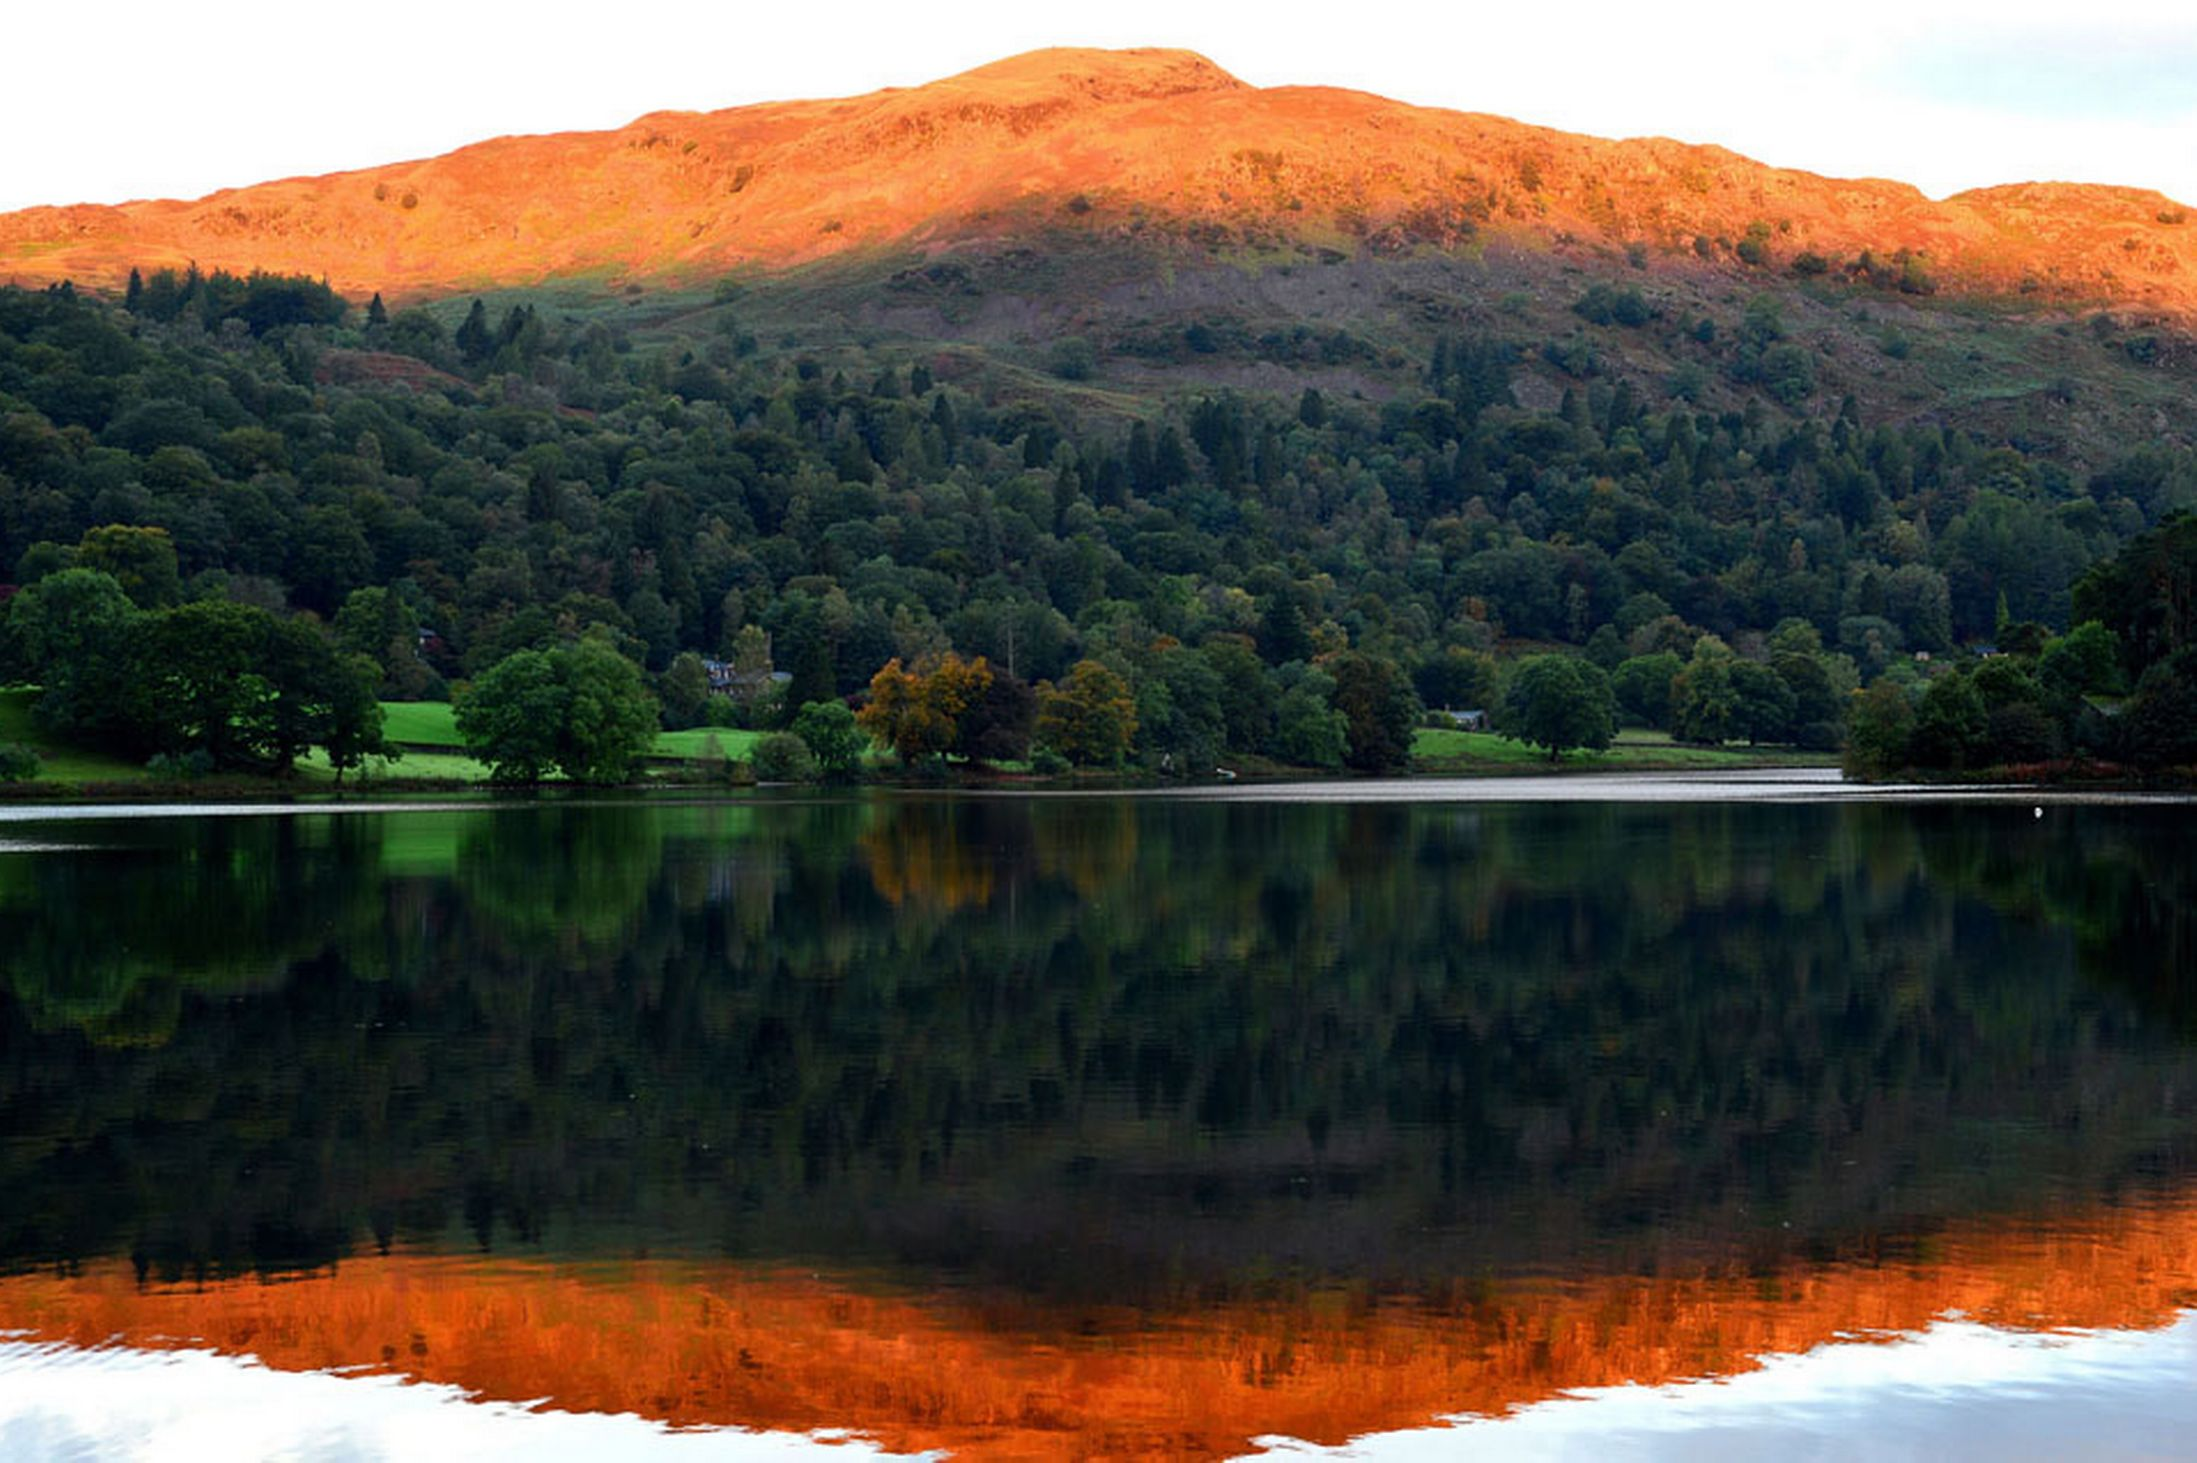 The-Autumn-sun-lights-up-the-peaks-near-Grasmere-Lake-in-the-Lake-District-6th-October-2641168